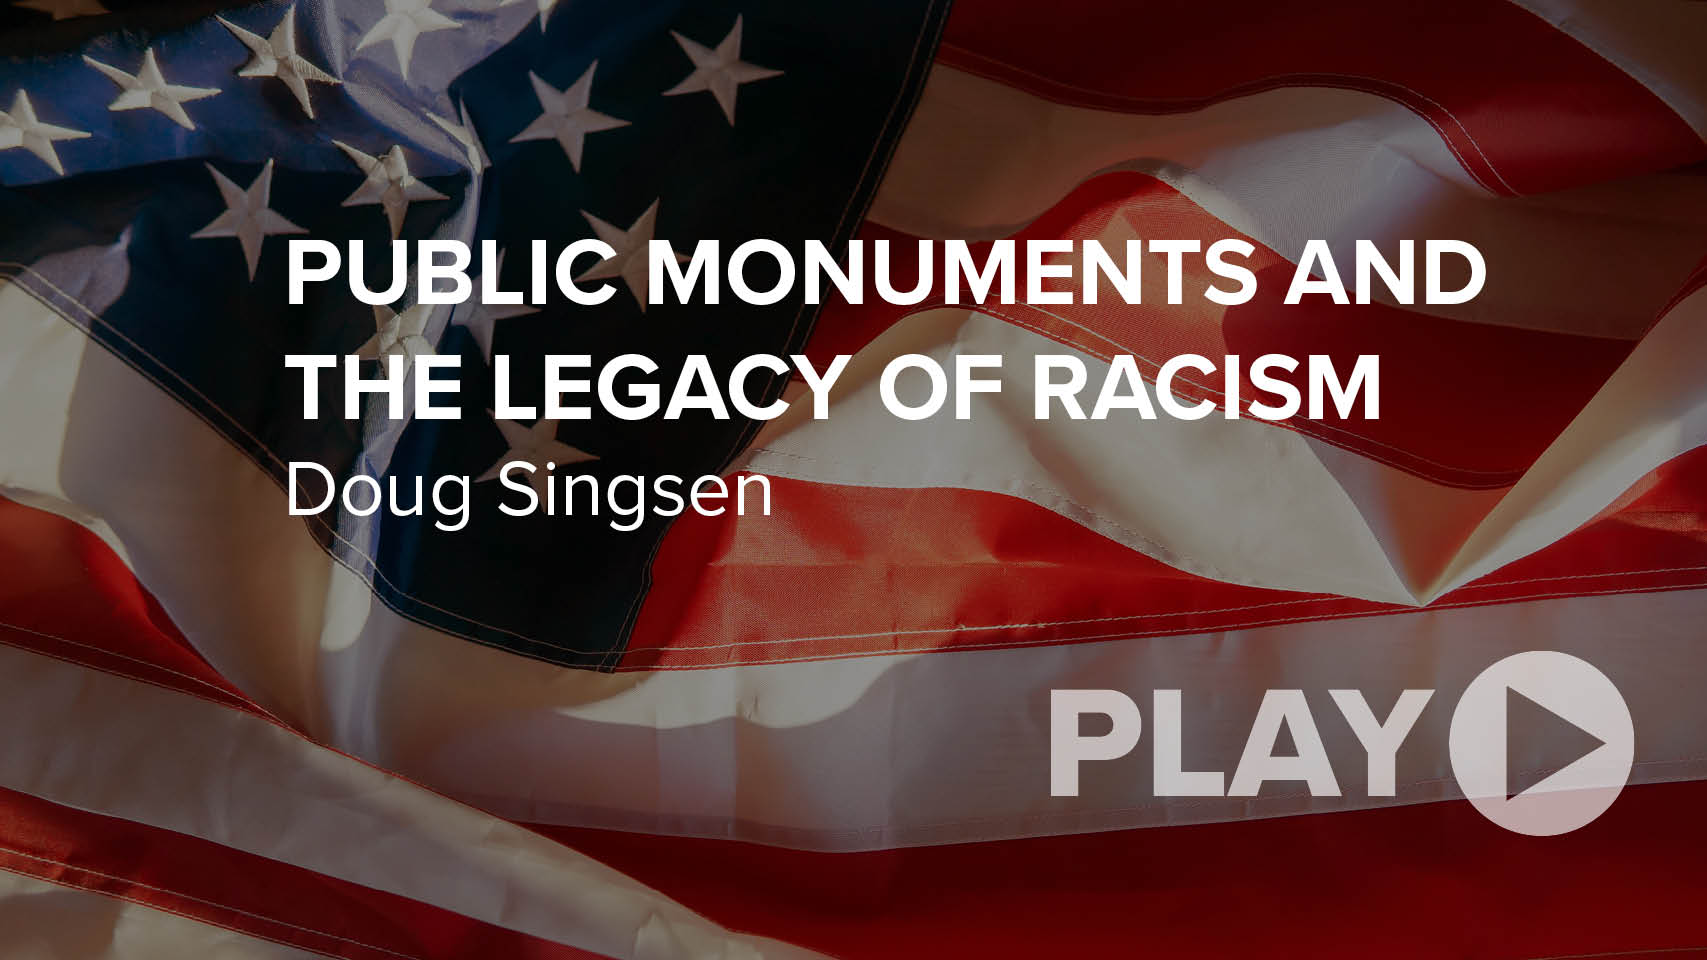 Public Monuments and the Legacy of Racism